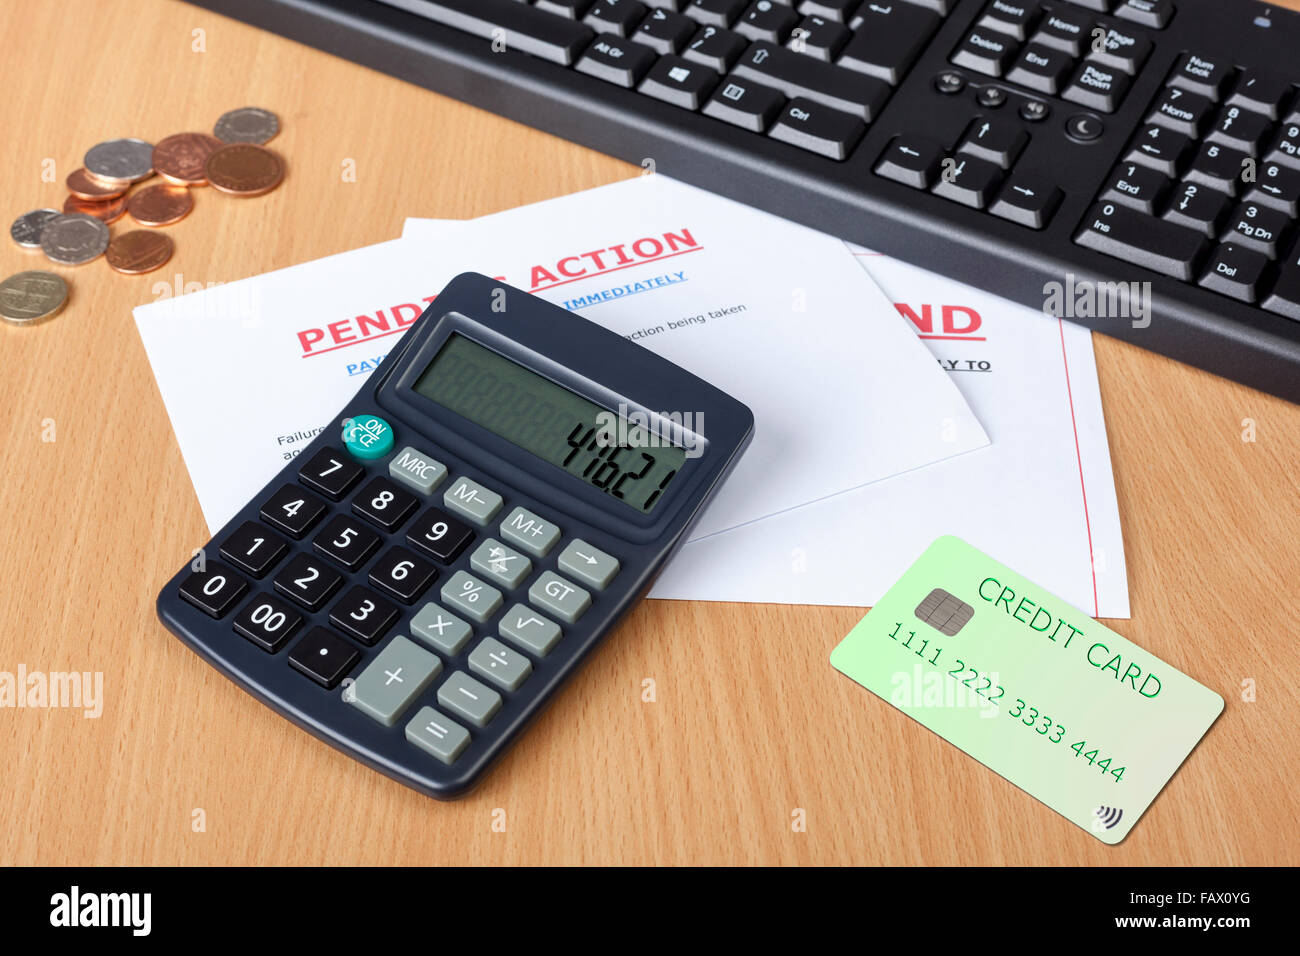 Desk showing final demands with credit card and a calculator along side a computer keyboard amd some cash - Stock Image